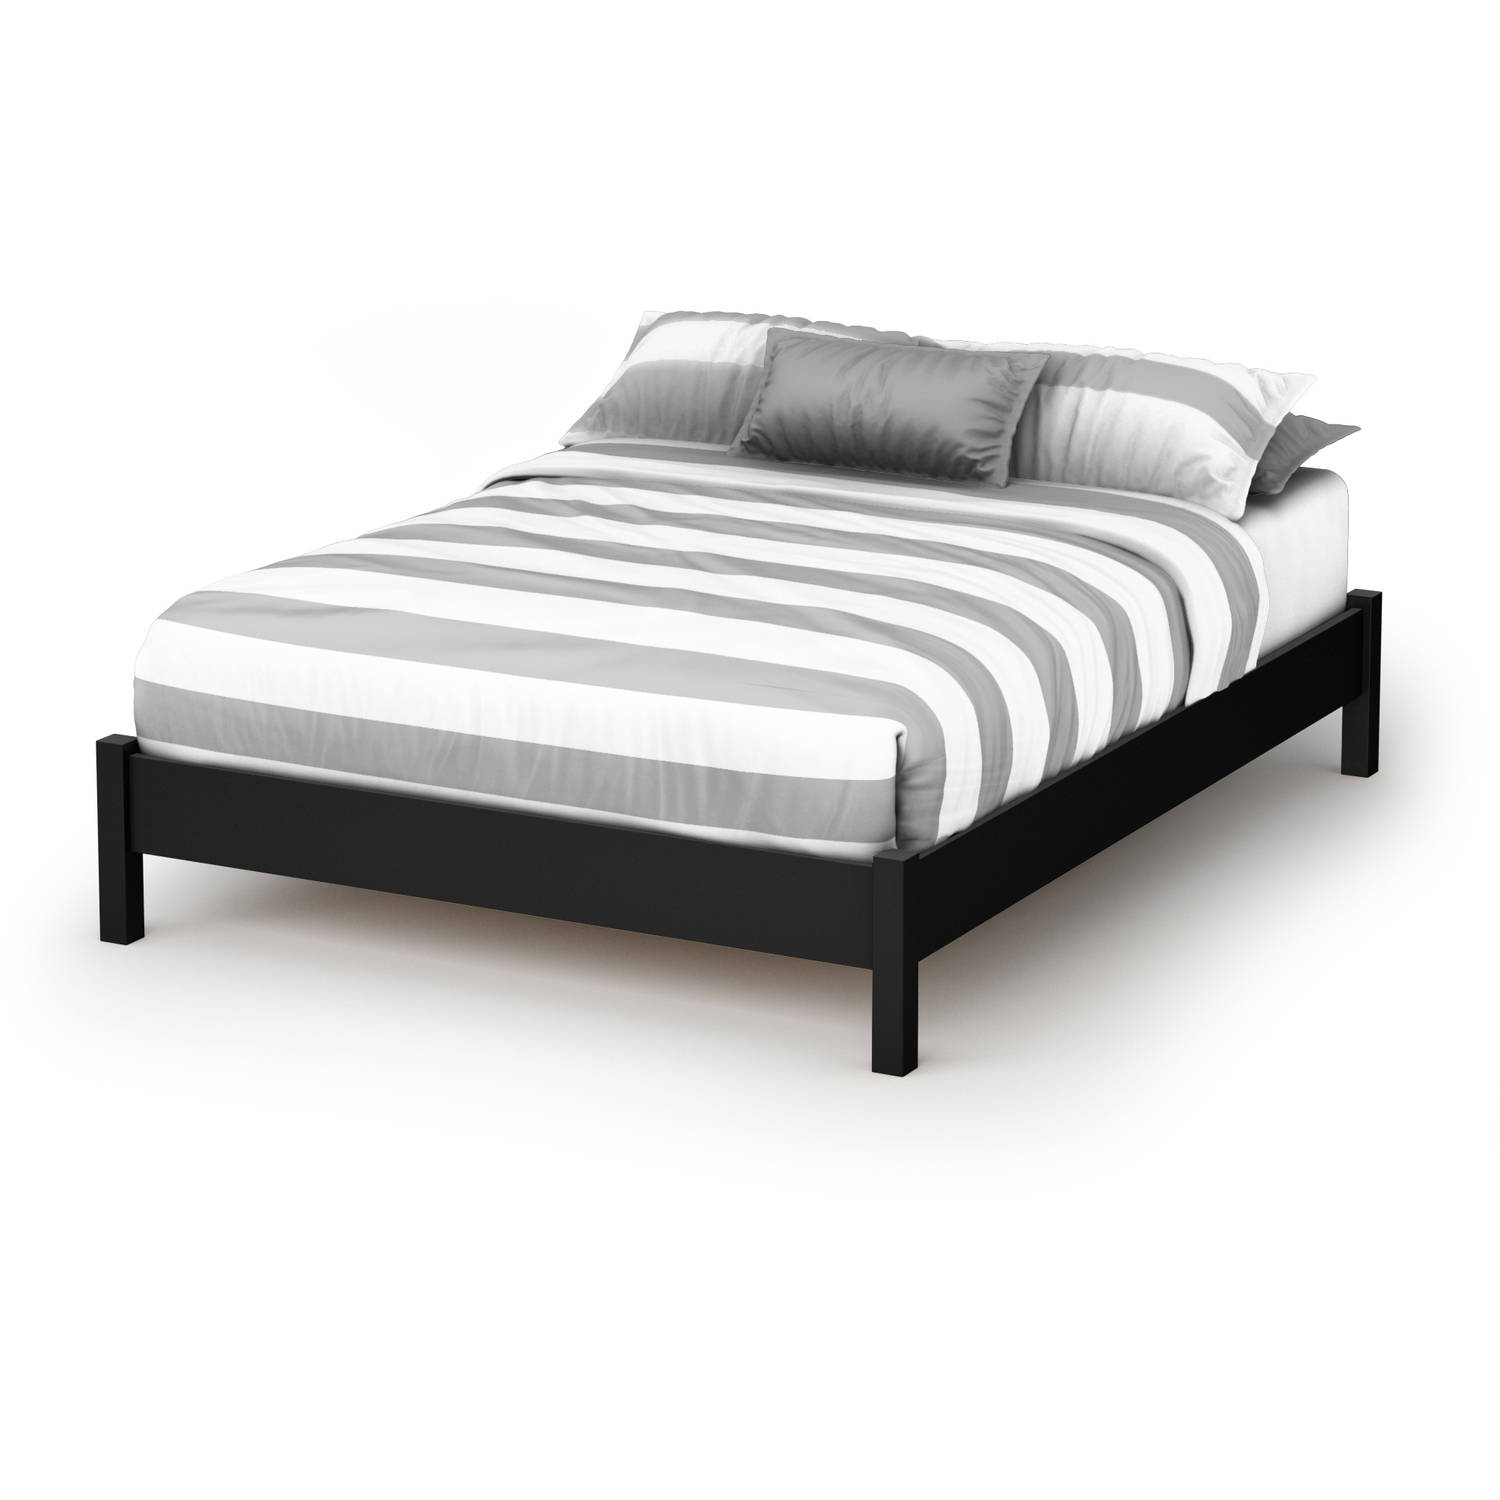 south shore soho full platform bed '' multiple finishes  - south shore soho full platform bed '' multiple finishes  walmartcom